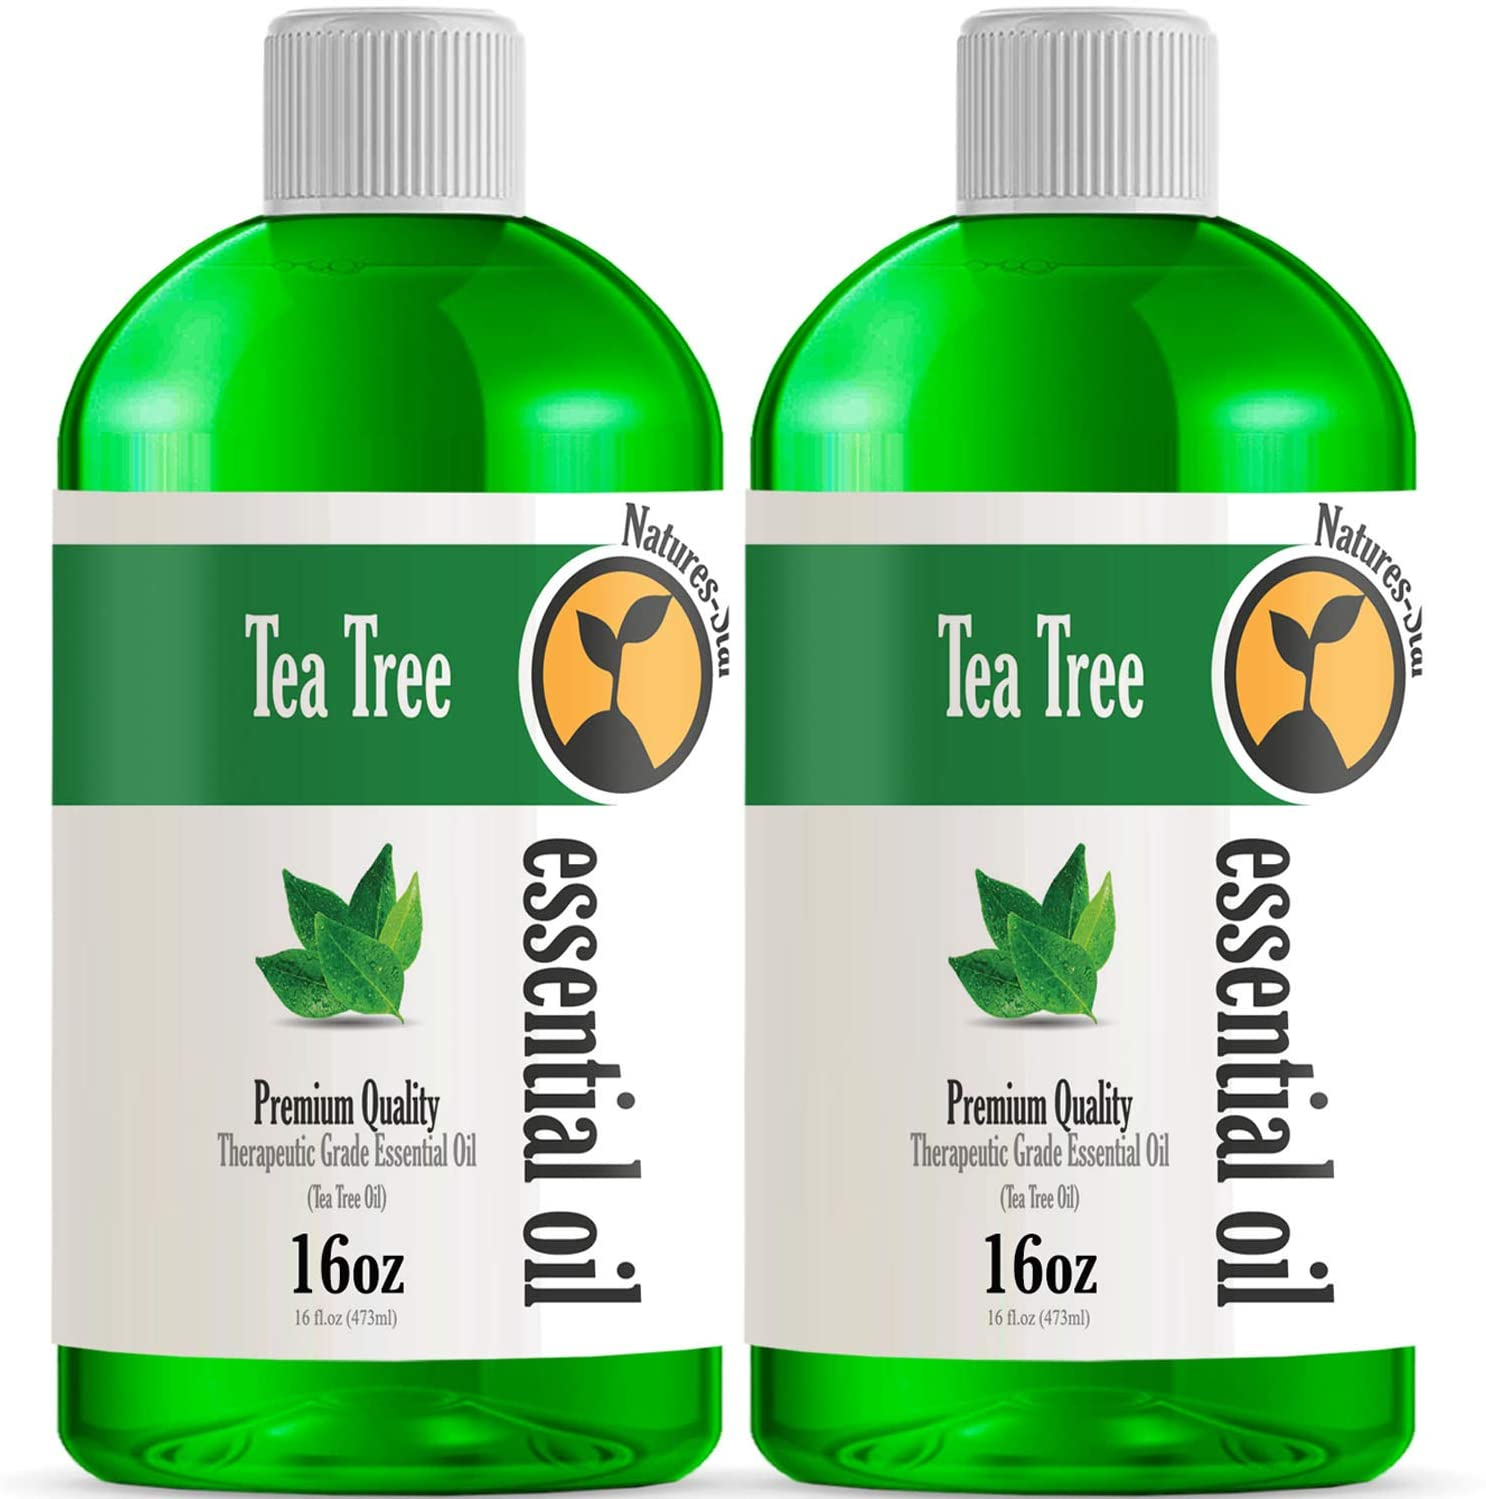 2 Pack - Bulk Size Tea Tree Essential Oil (32OZ Total) - Therapeutic Grade Essential Oil - 2 Pack of 16oz Bottles